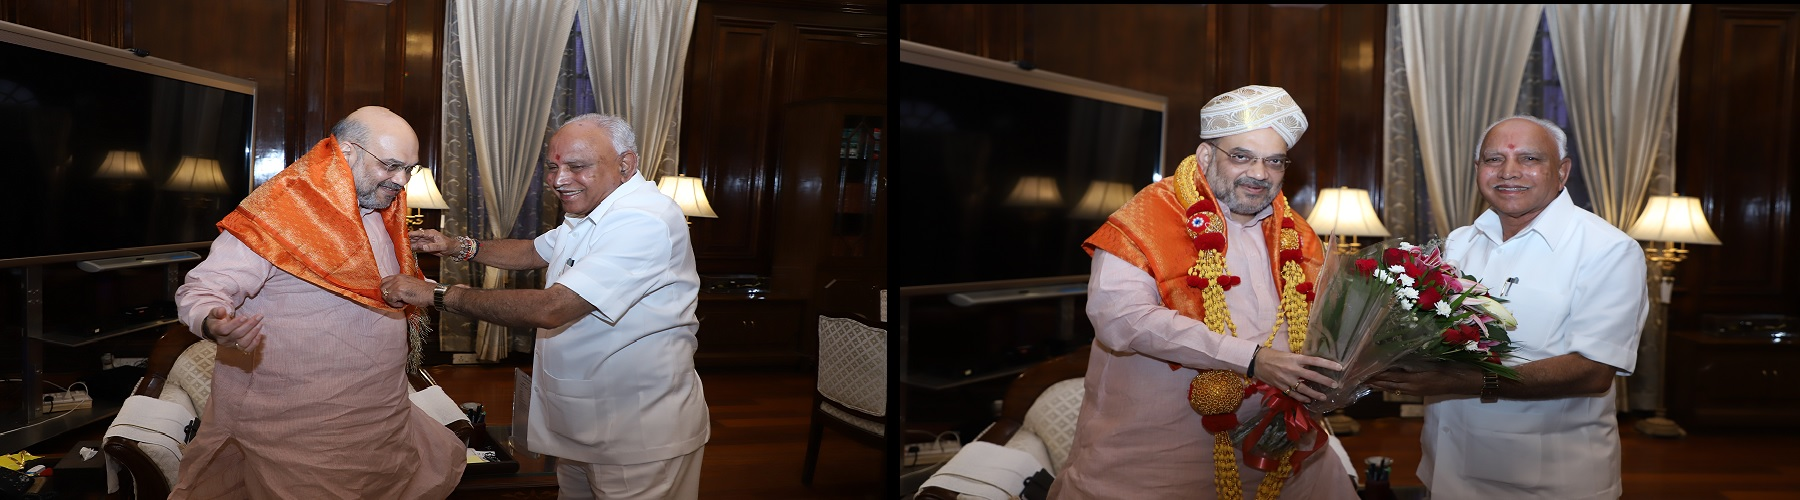 Union Minister of Home Affairs Shri Amit Shah meeting the Chief Minister of Karnataka, Shri B S Yediurappa in New Delhi on August 17, 2019.